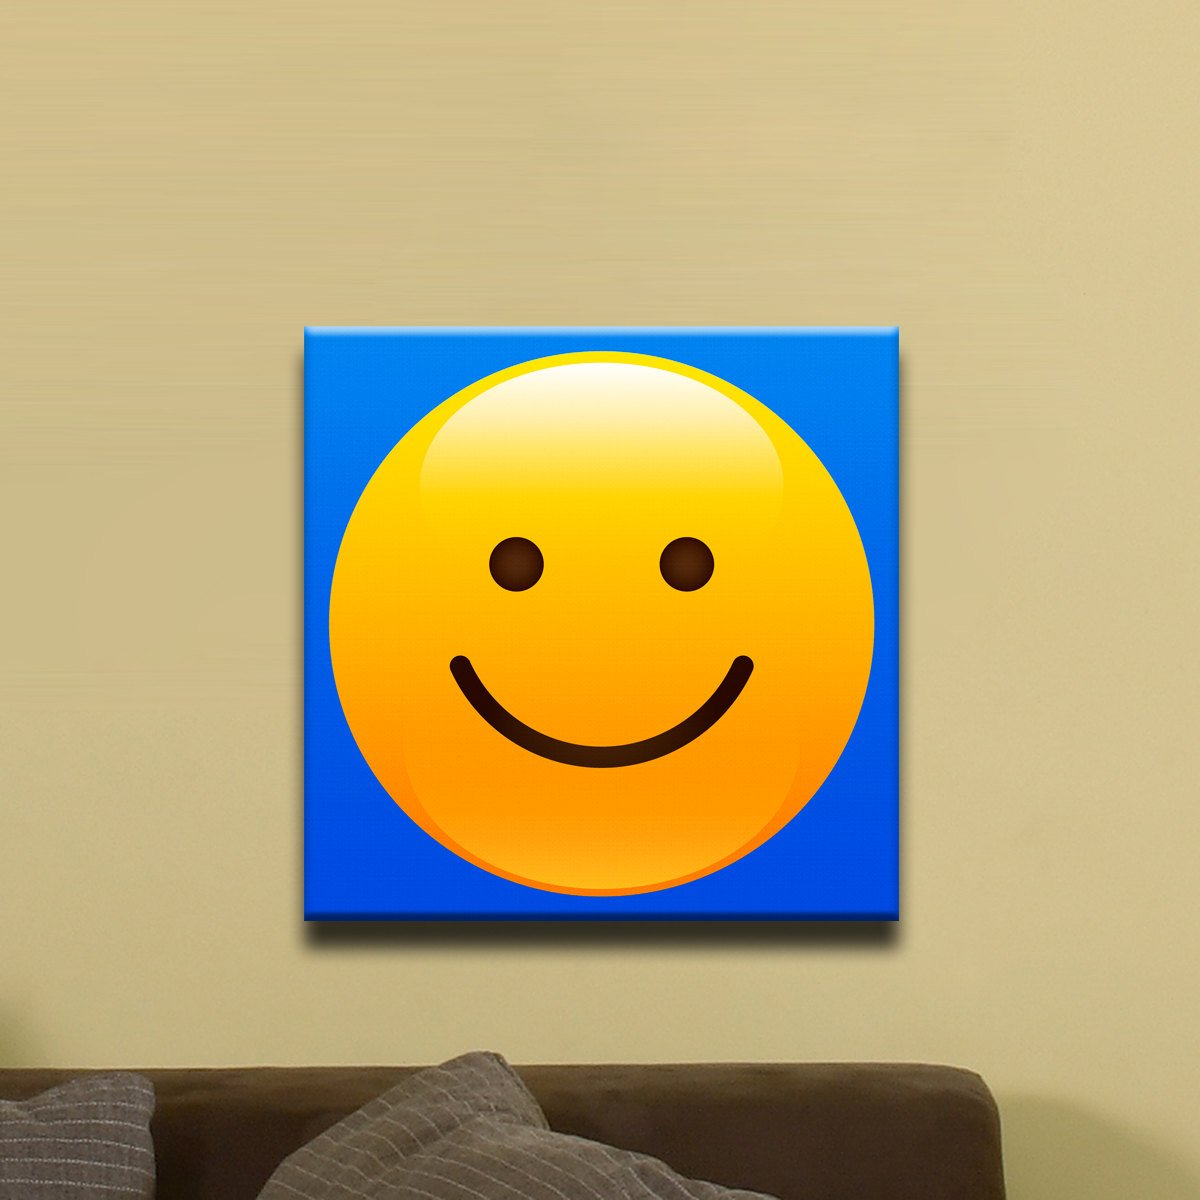 "Smile, Smiley Face Shiny Emoji (12"" x 12"") - Canvas Wrap Print"